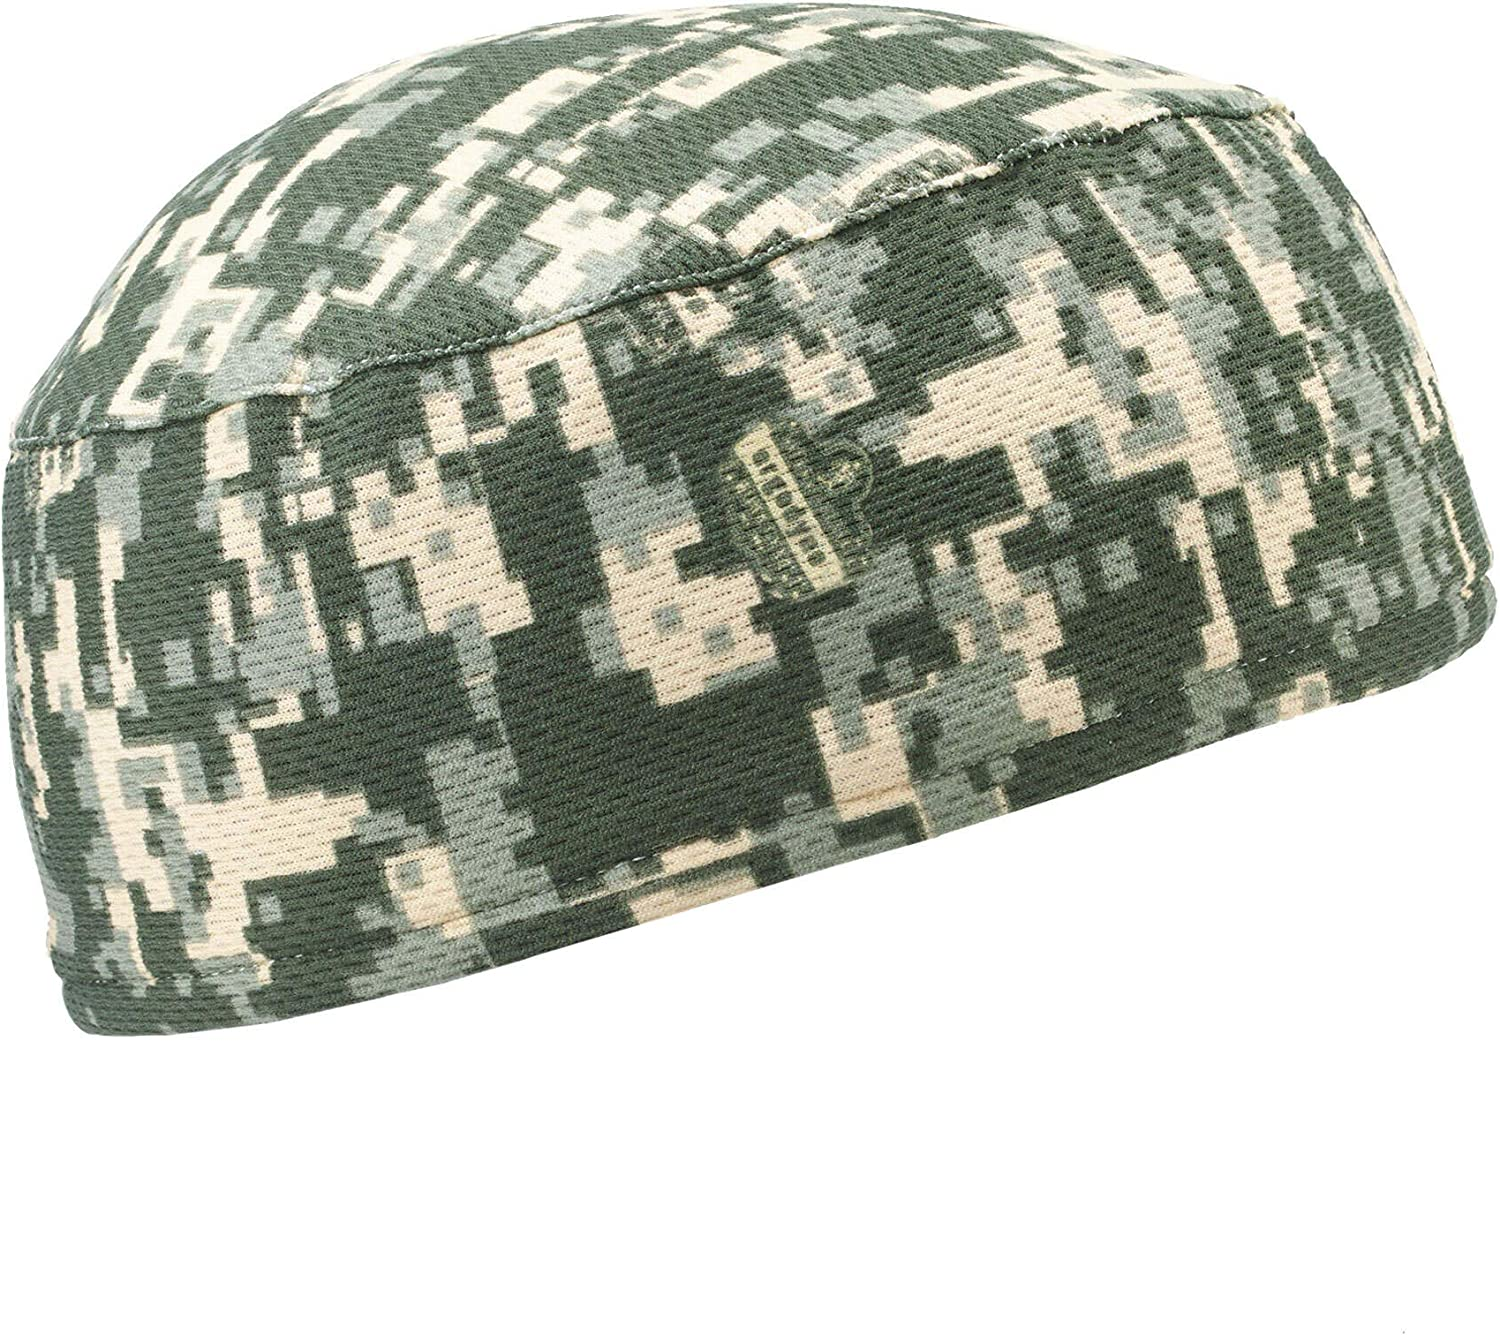 Ergodyne Chill-Its 6630 Absorptive Moisture-Wicking Skull Cap, Camo